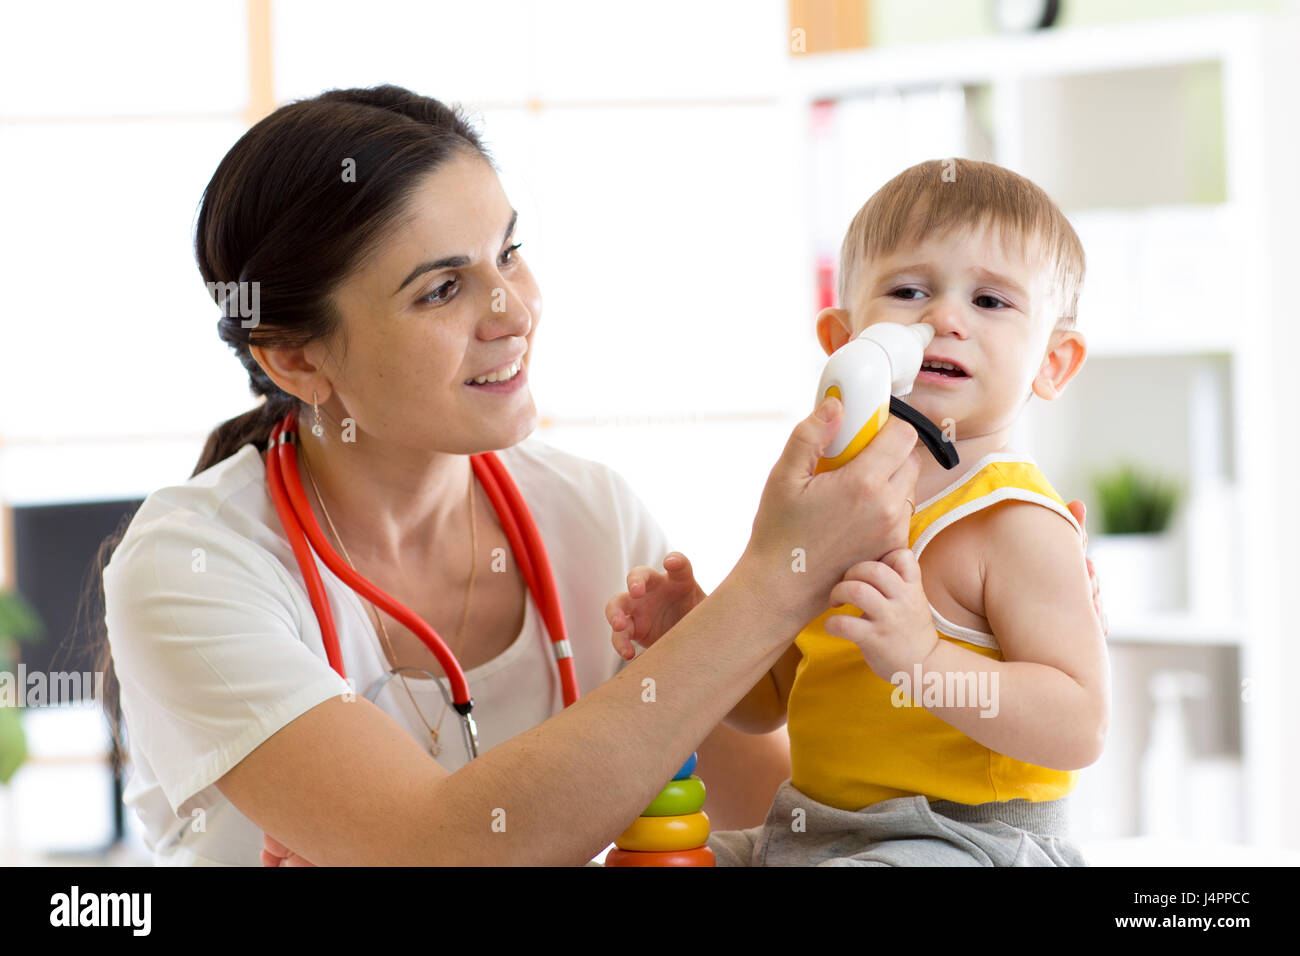 Female doctor pediatrician using nasal aspiration for child. Mucus suction patient kid baby. Stock Photo